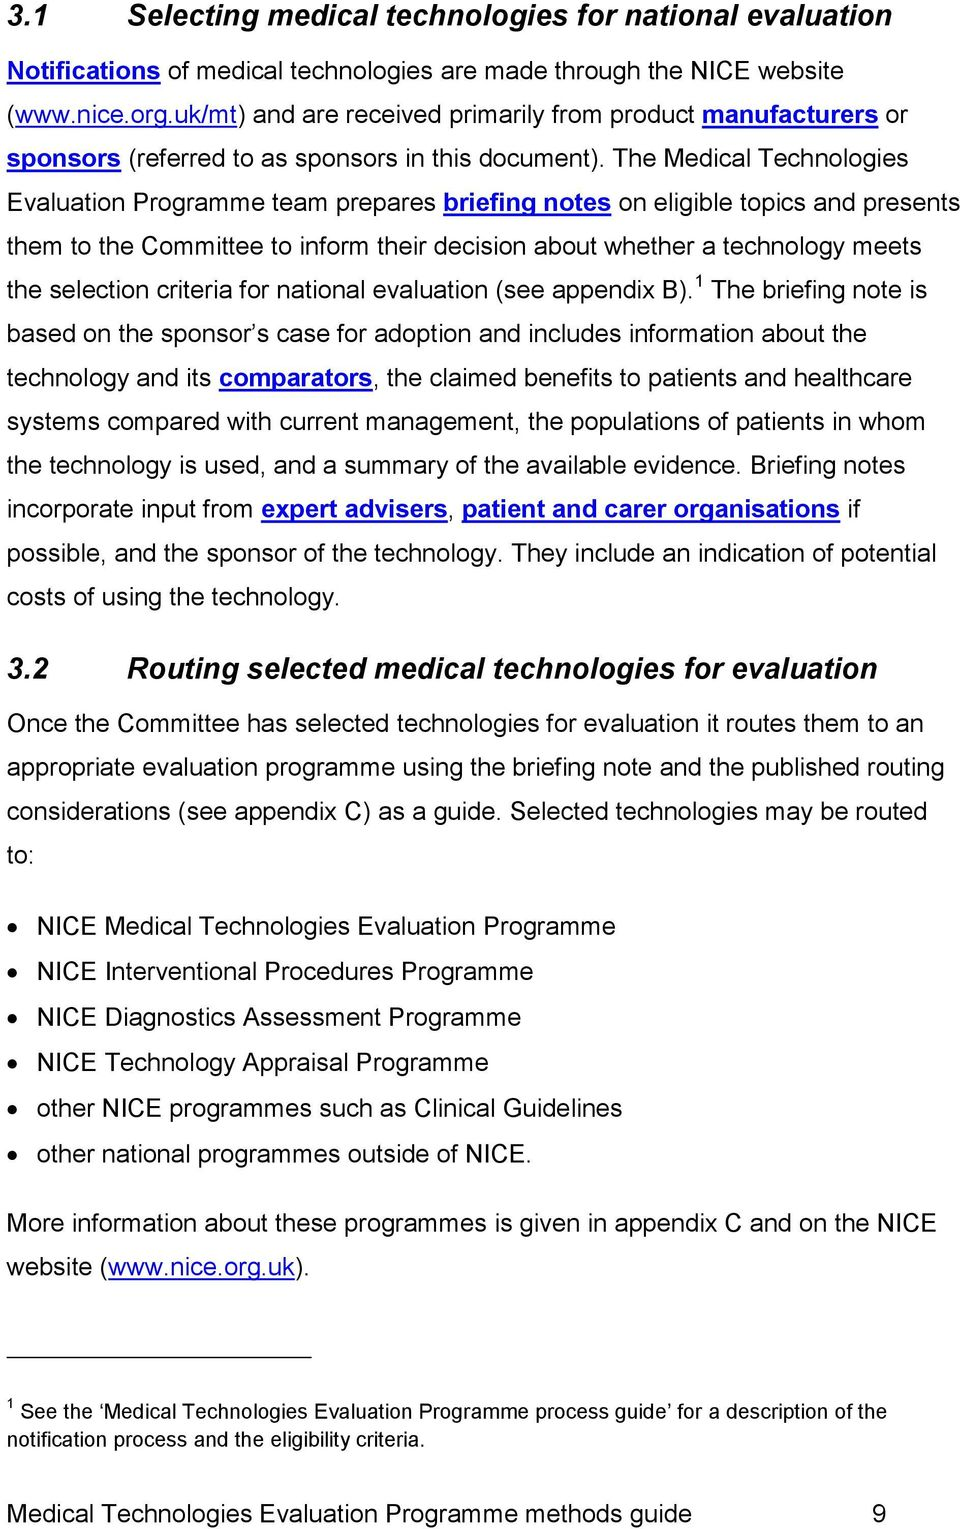 The Medical Technologies Evaluation Programme team prepares briefing notes on eligible topics and presents them to the Committee to inform their decision about whether a technology meets the